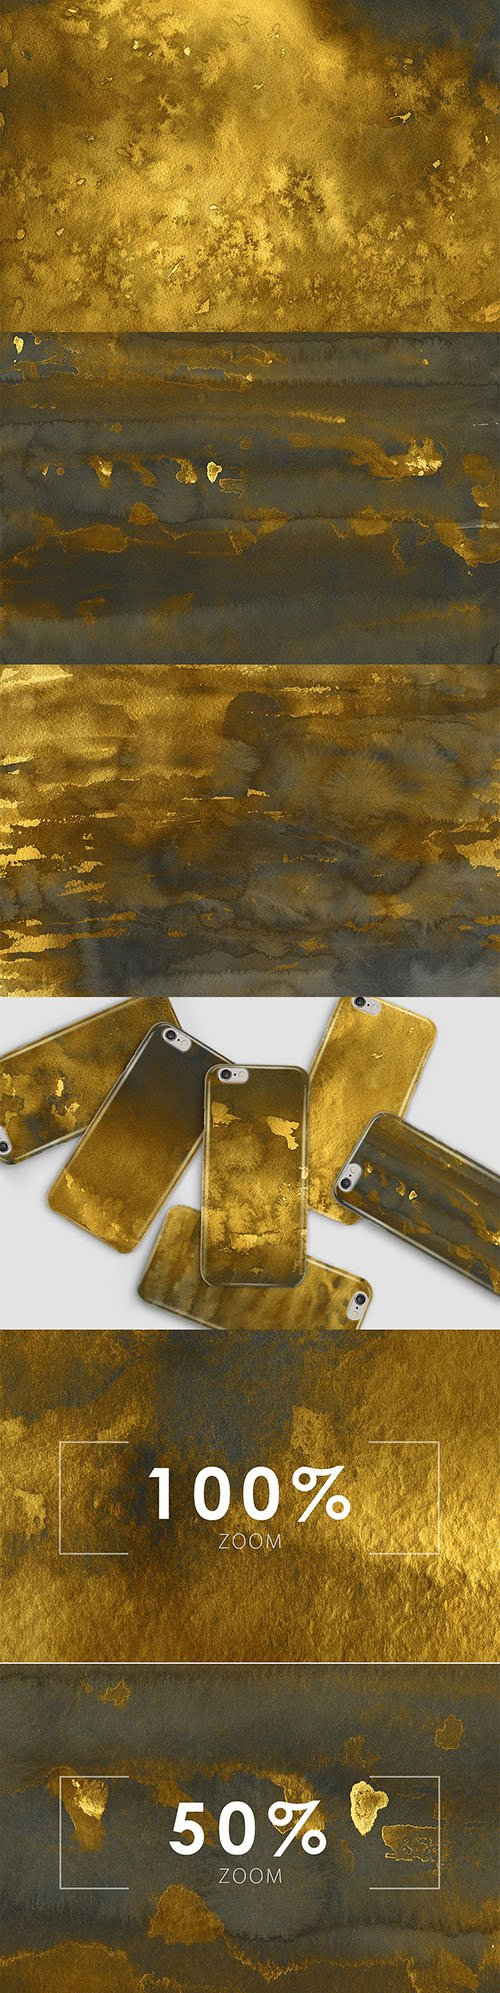 Golden Watercolor & Ink Backgrounds